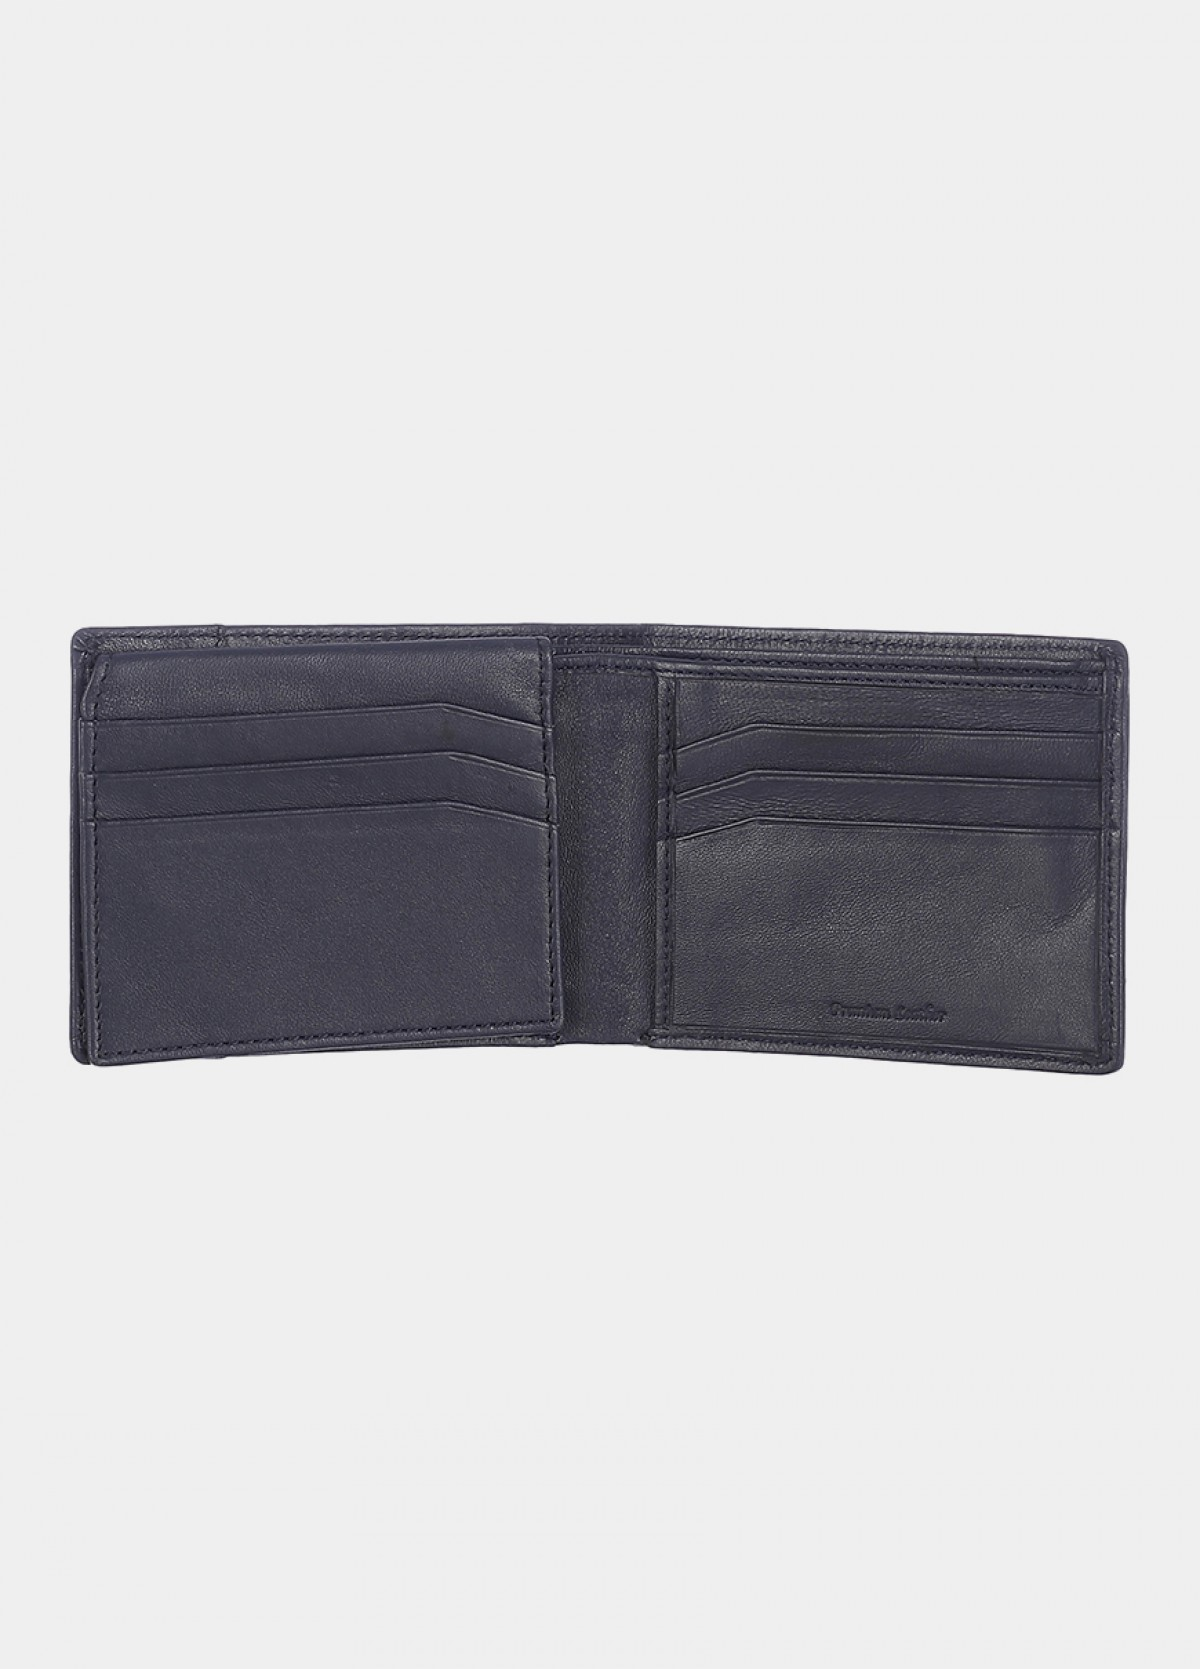 Him & The City Men's Bi Fold Wallet With Id Flap Navy